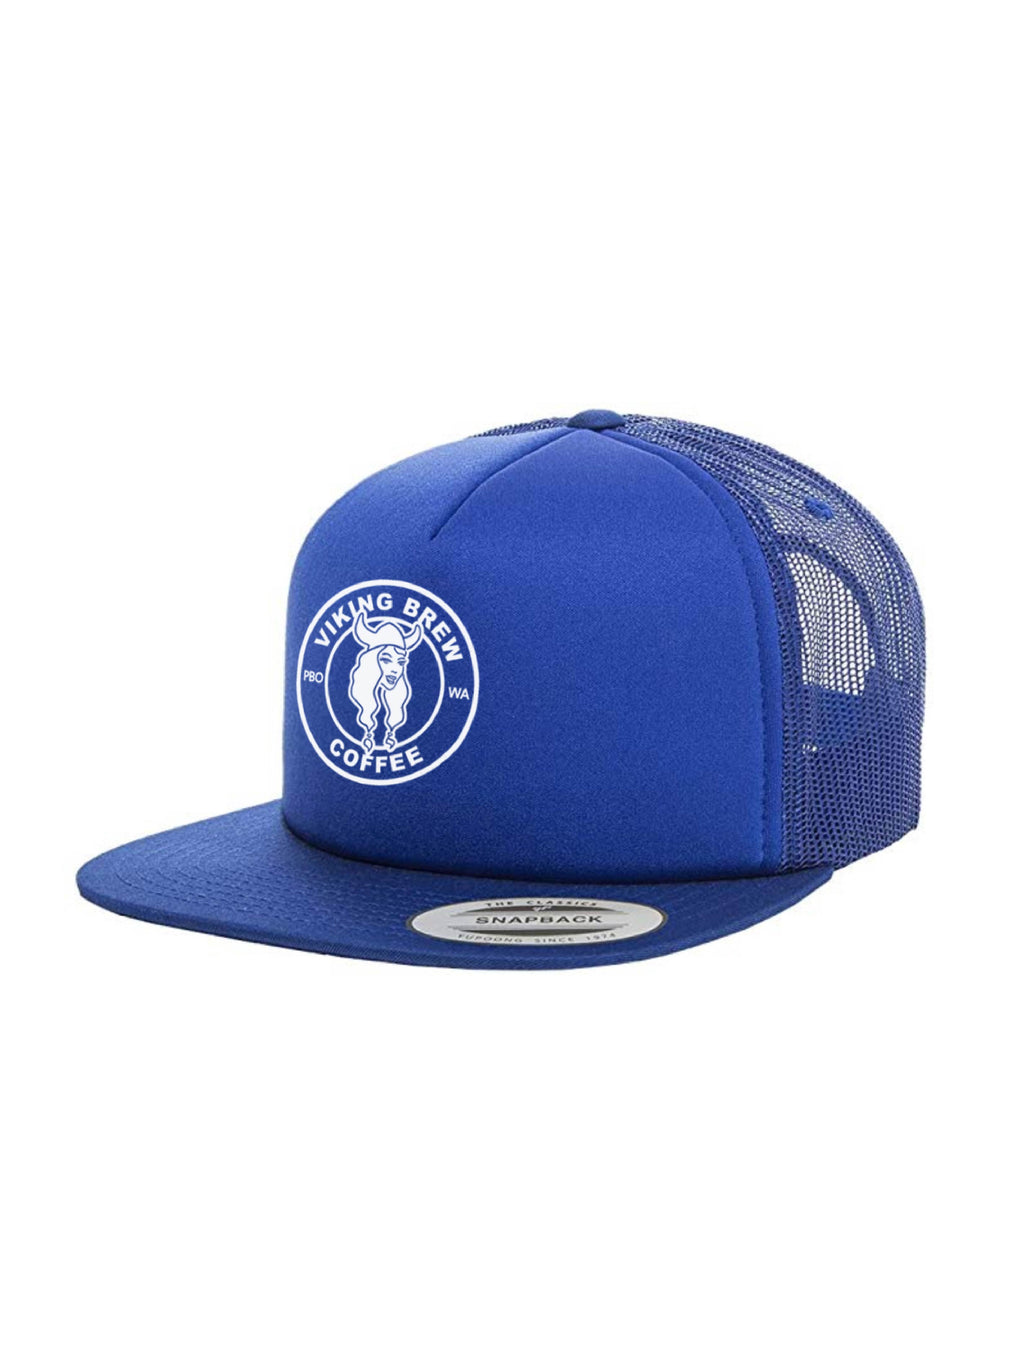 Viking Brew Royal Blue Foam Hat